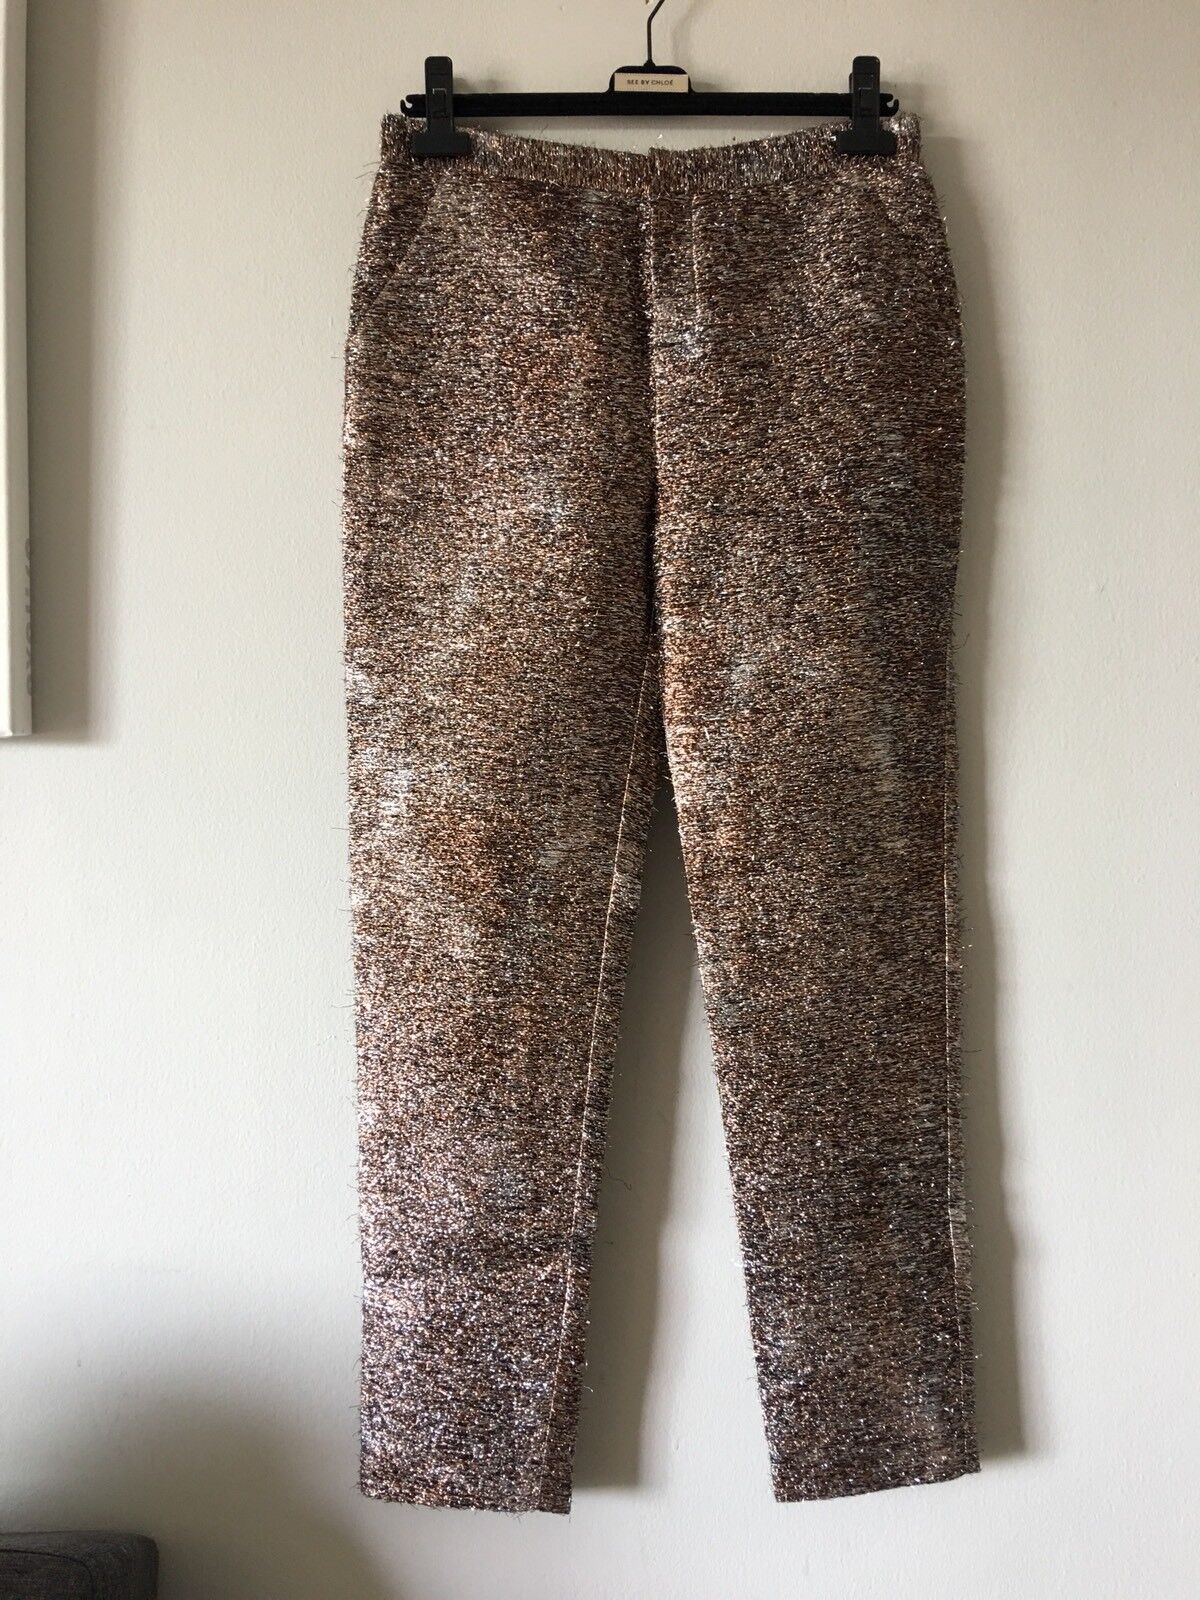 NWT PORTS 1961 TOBACCO MIX Farbe PANTS Größe 4 RARE AND UNIQUE LIGHTWEIGHT